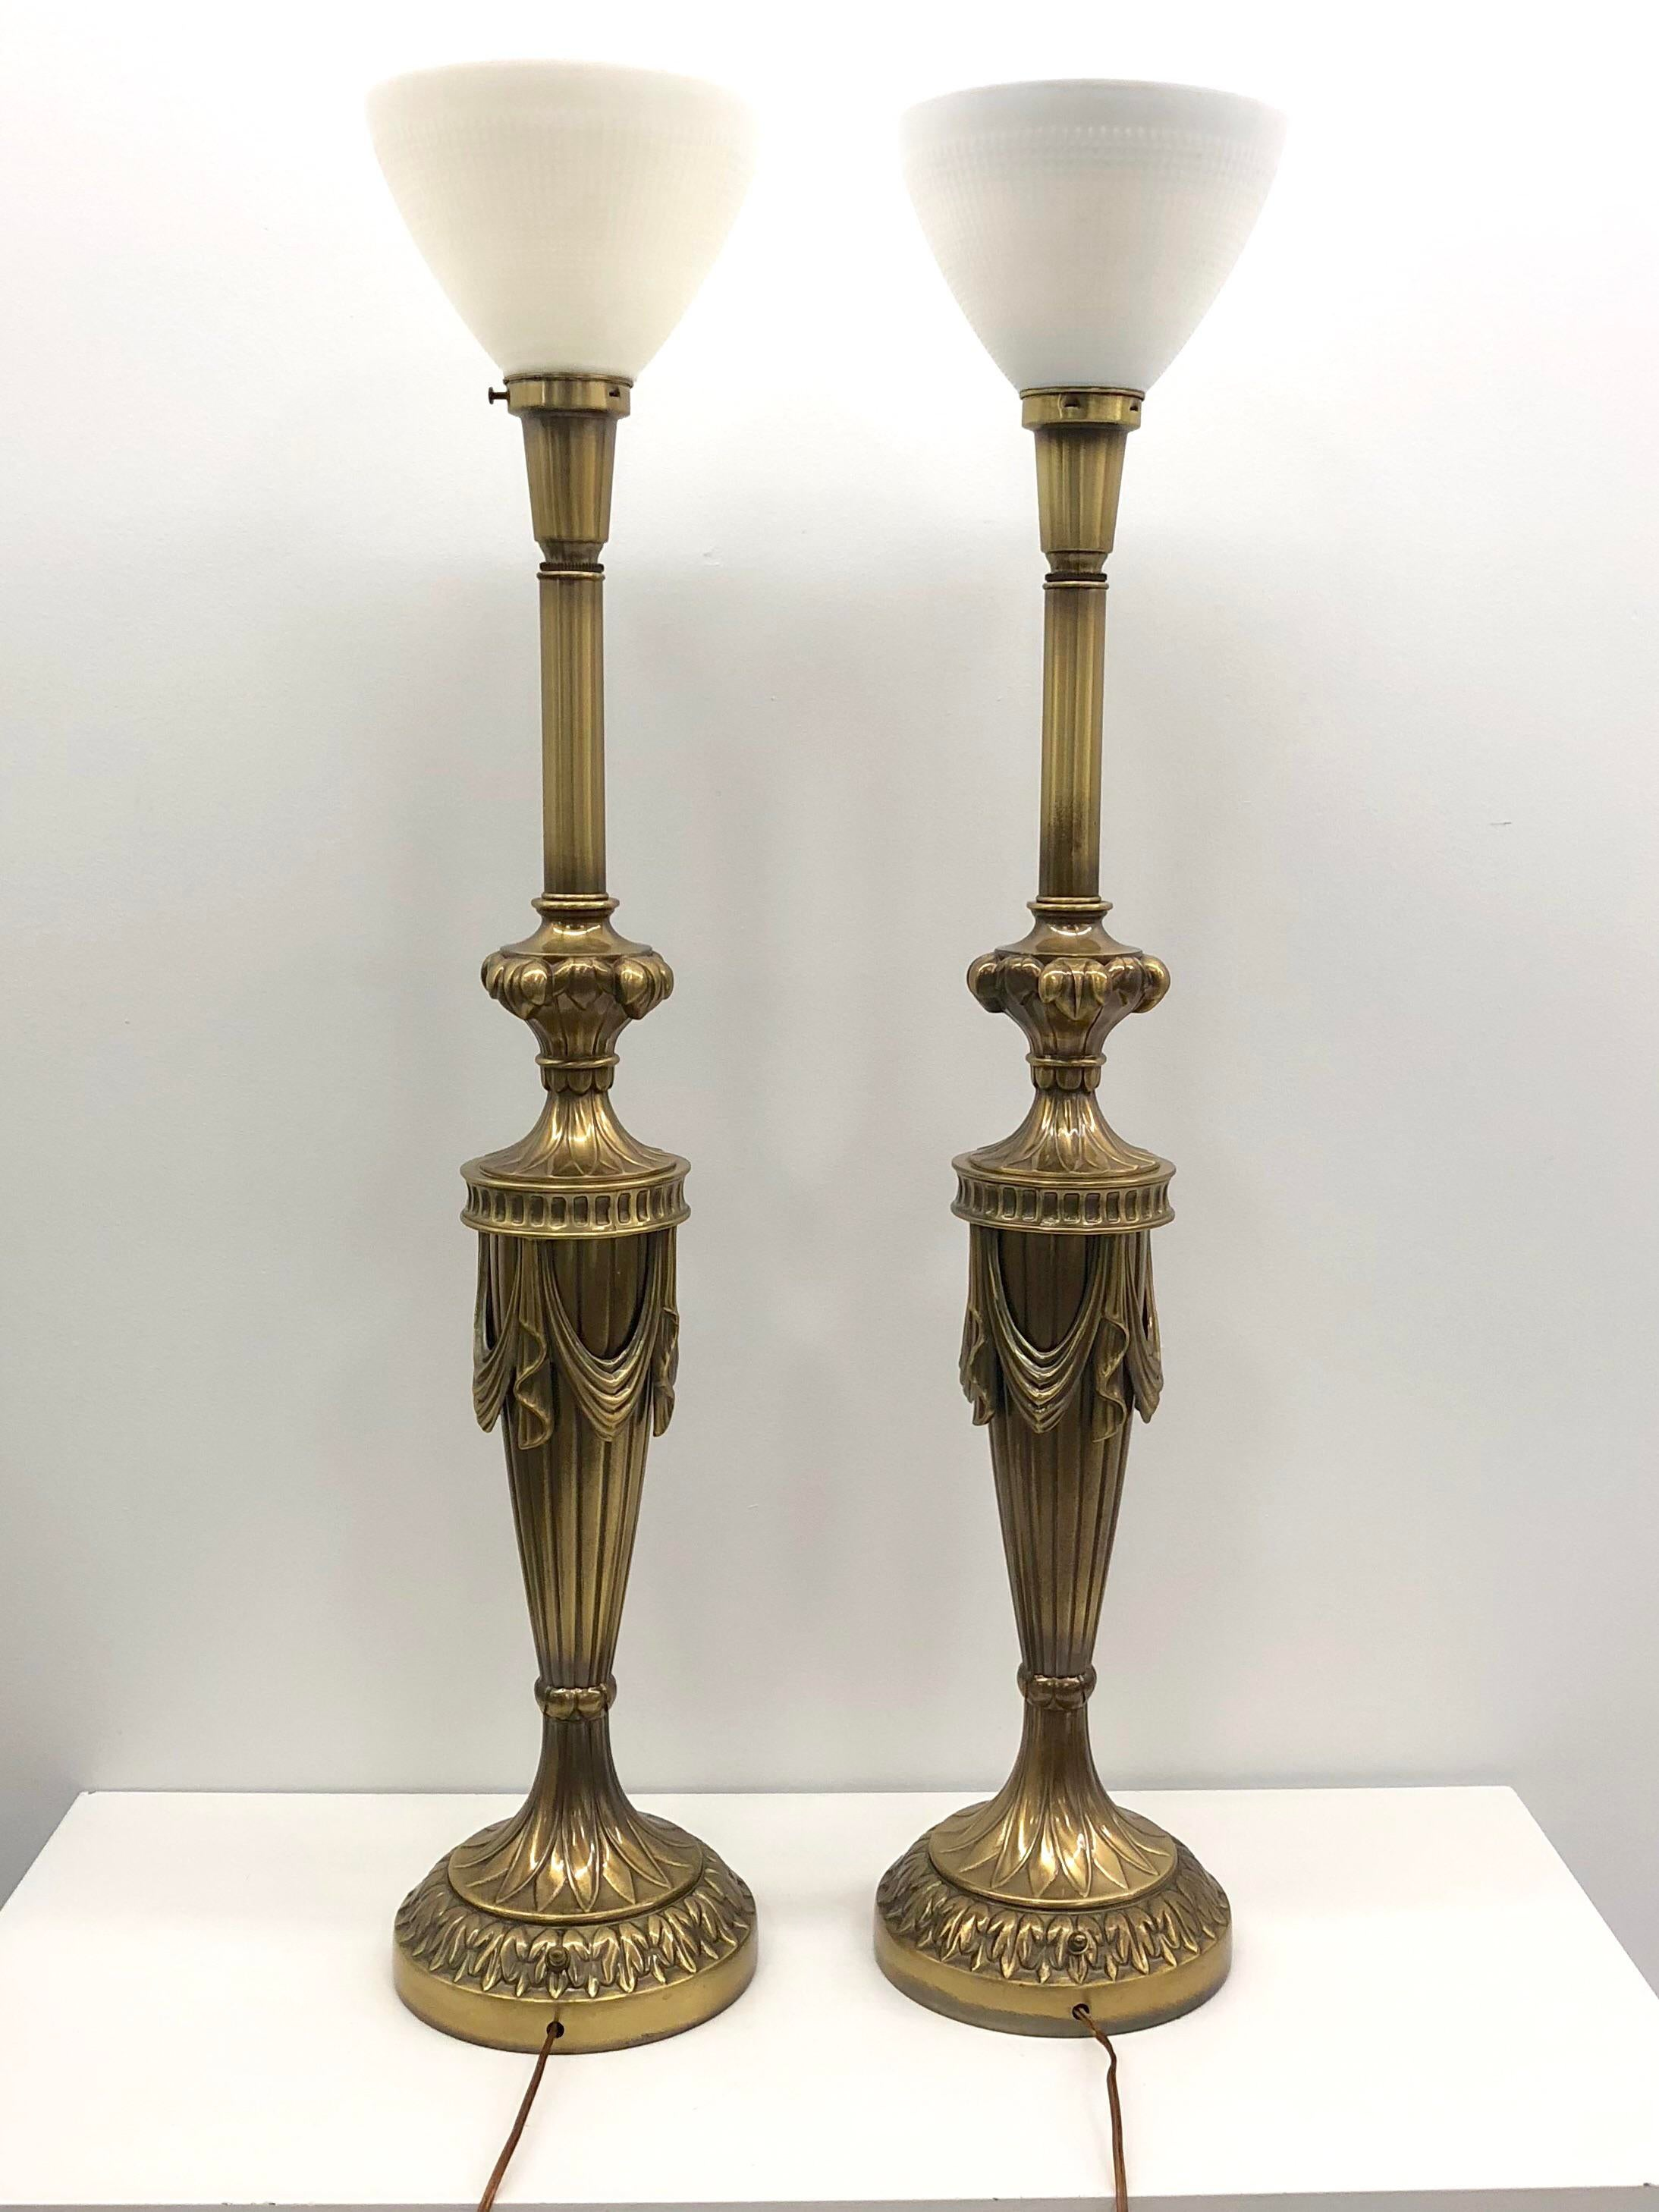 Monumental Rembrandt Brass Torchiere Table Lamps   A Pair   Image 3 Of 8